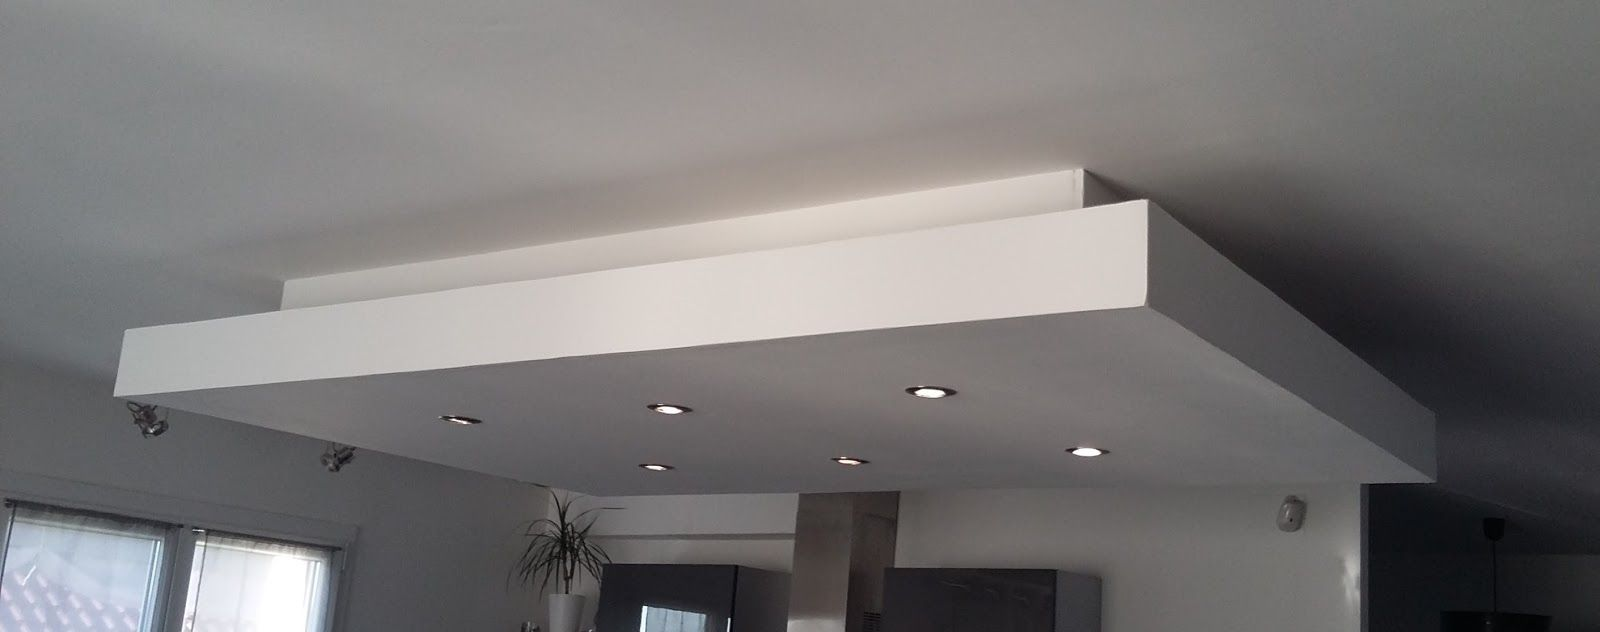 D roch plafond decaissement descendu suspendu placo for Plafond placo deco